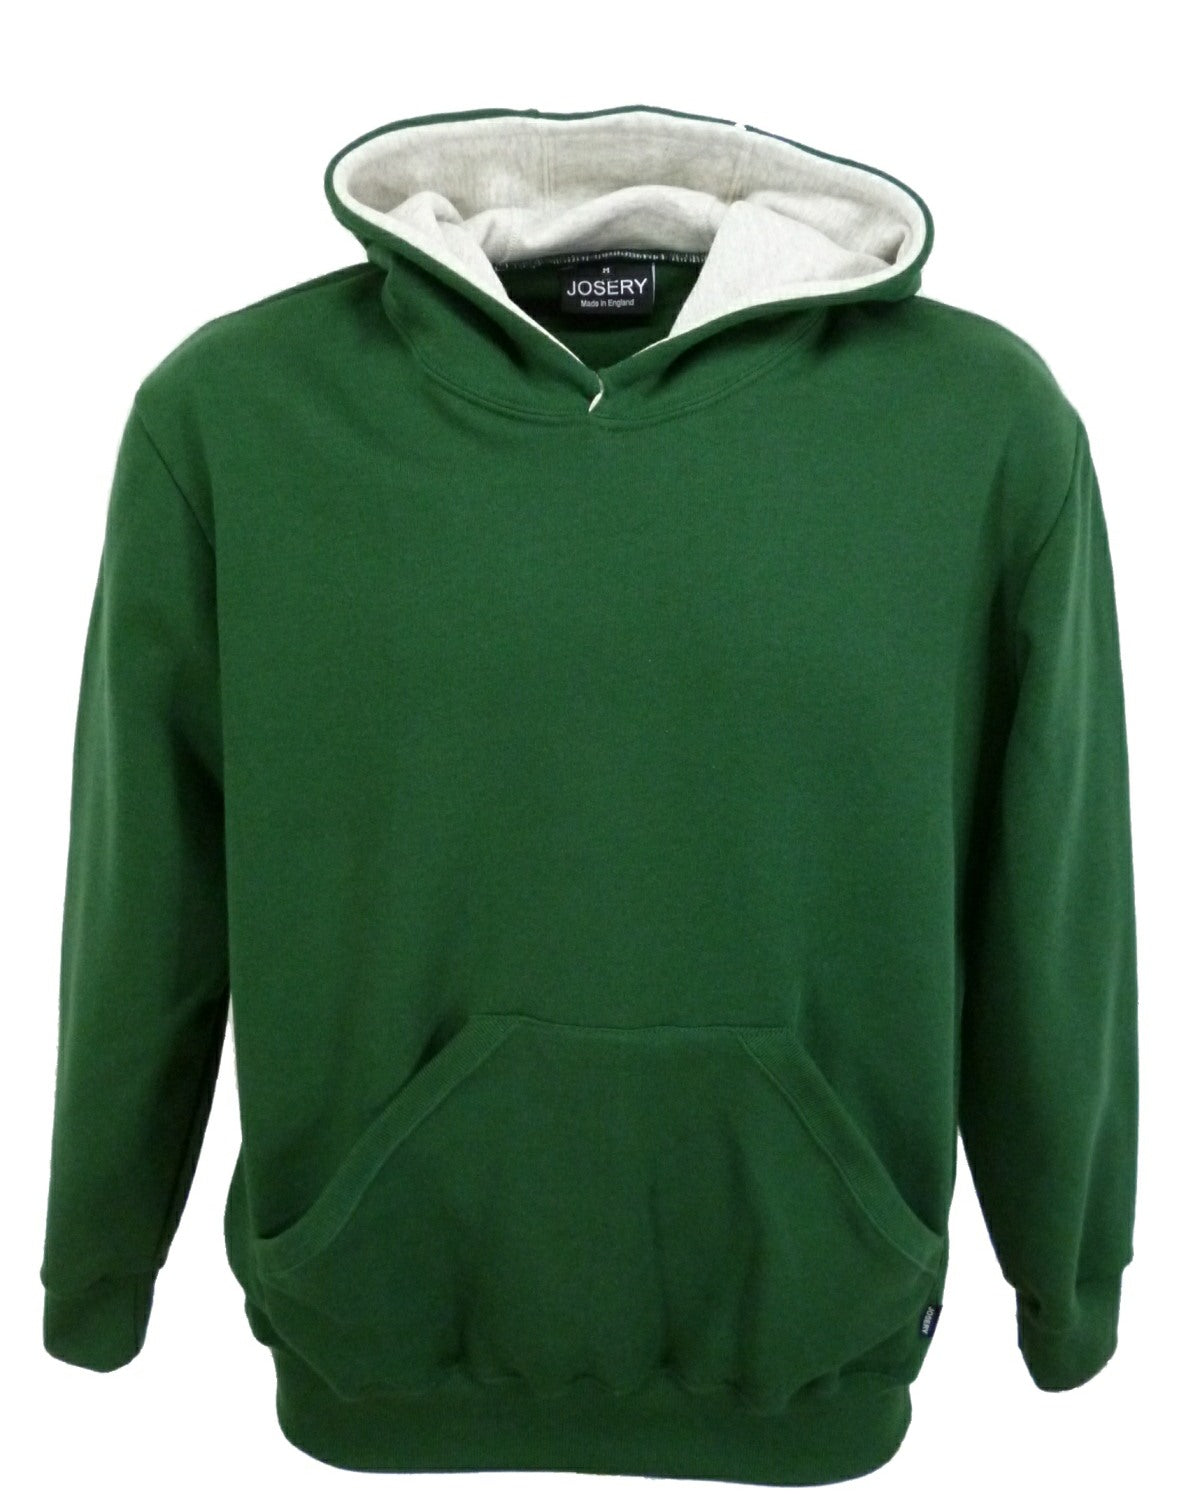 Forest green hoodie, made in UK